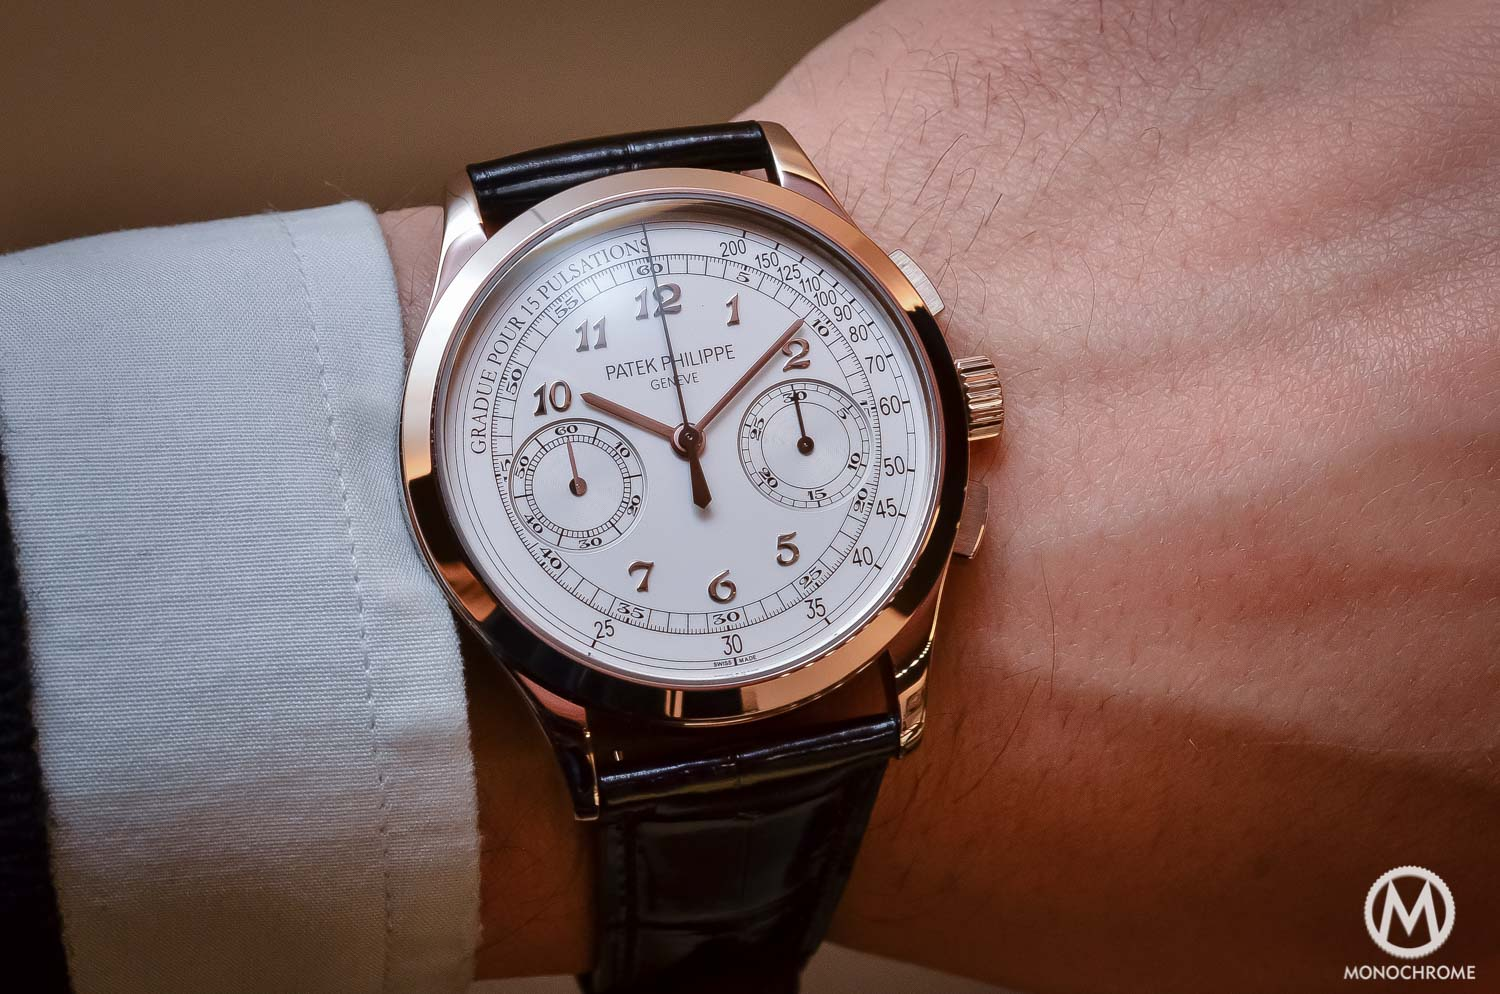 Patek Philippe 5170g-001 Chronograph - review - case